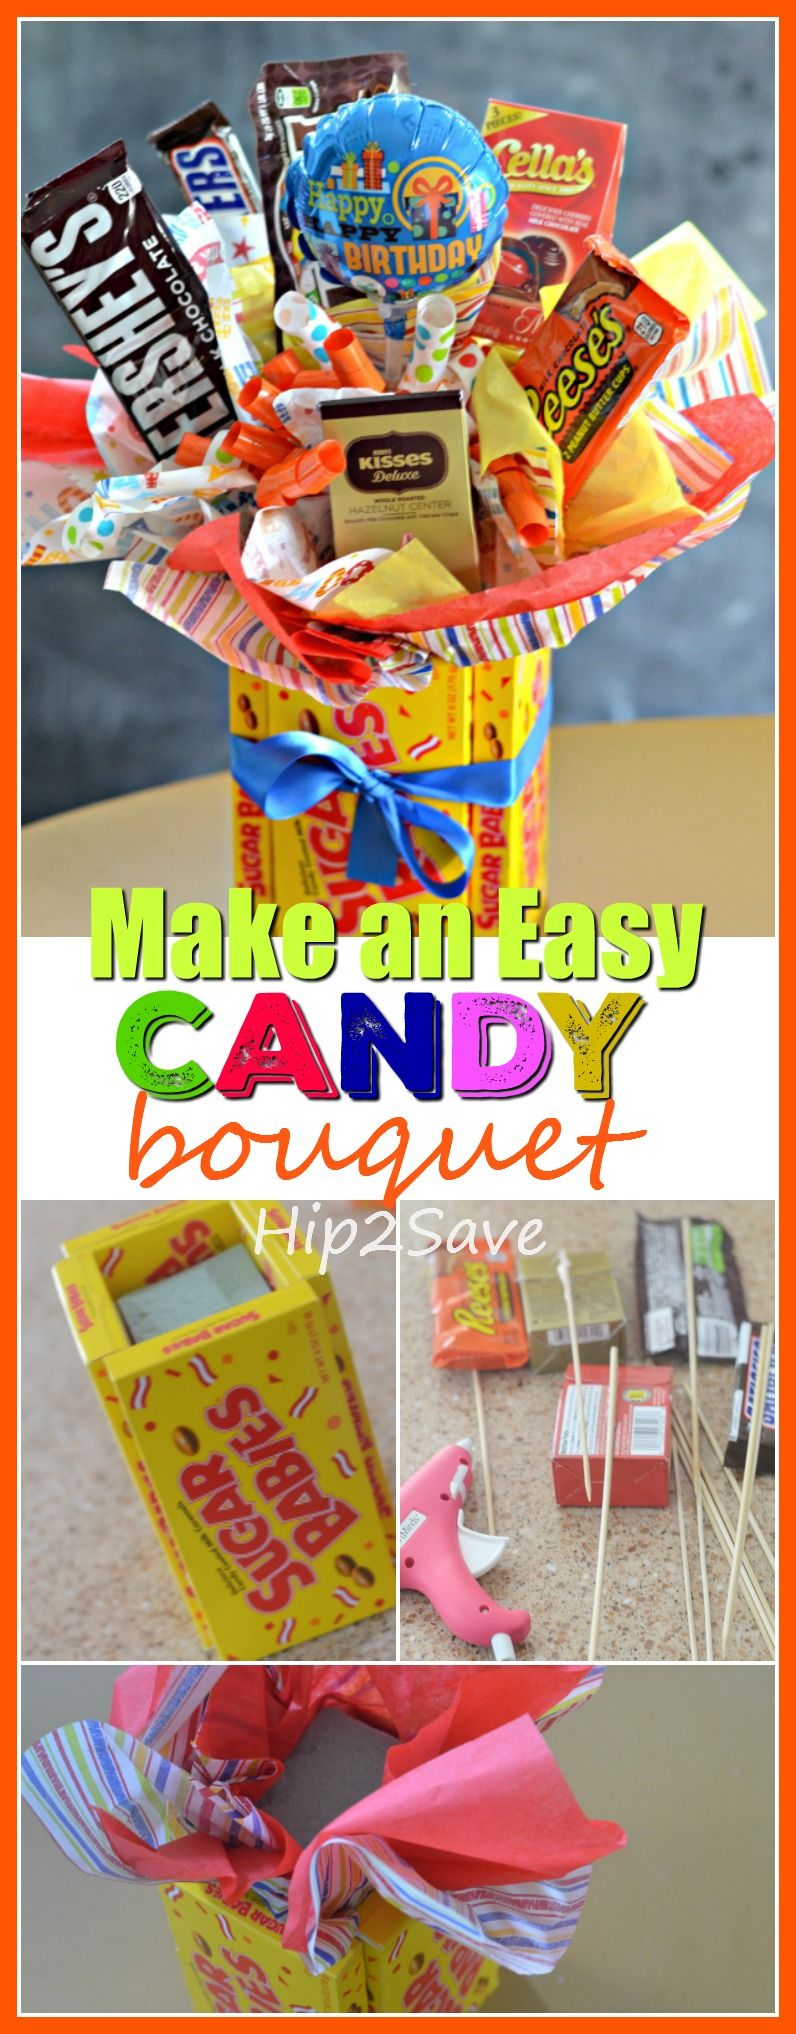 Diy candy bouquet fun easy gift idea candy bouquet easy gifts diy candy bouquet fun easy gift idea izmirmasajfo Choice Image